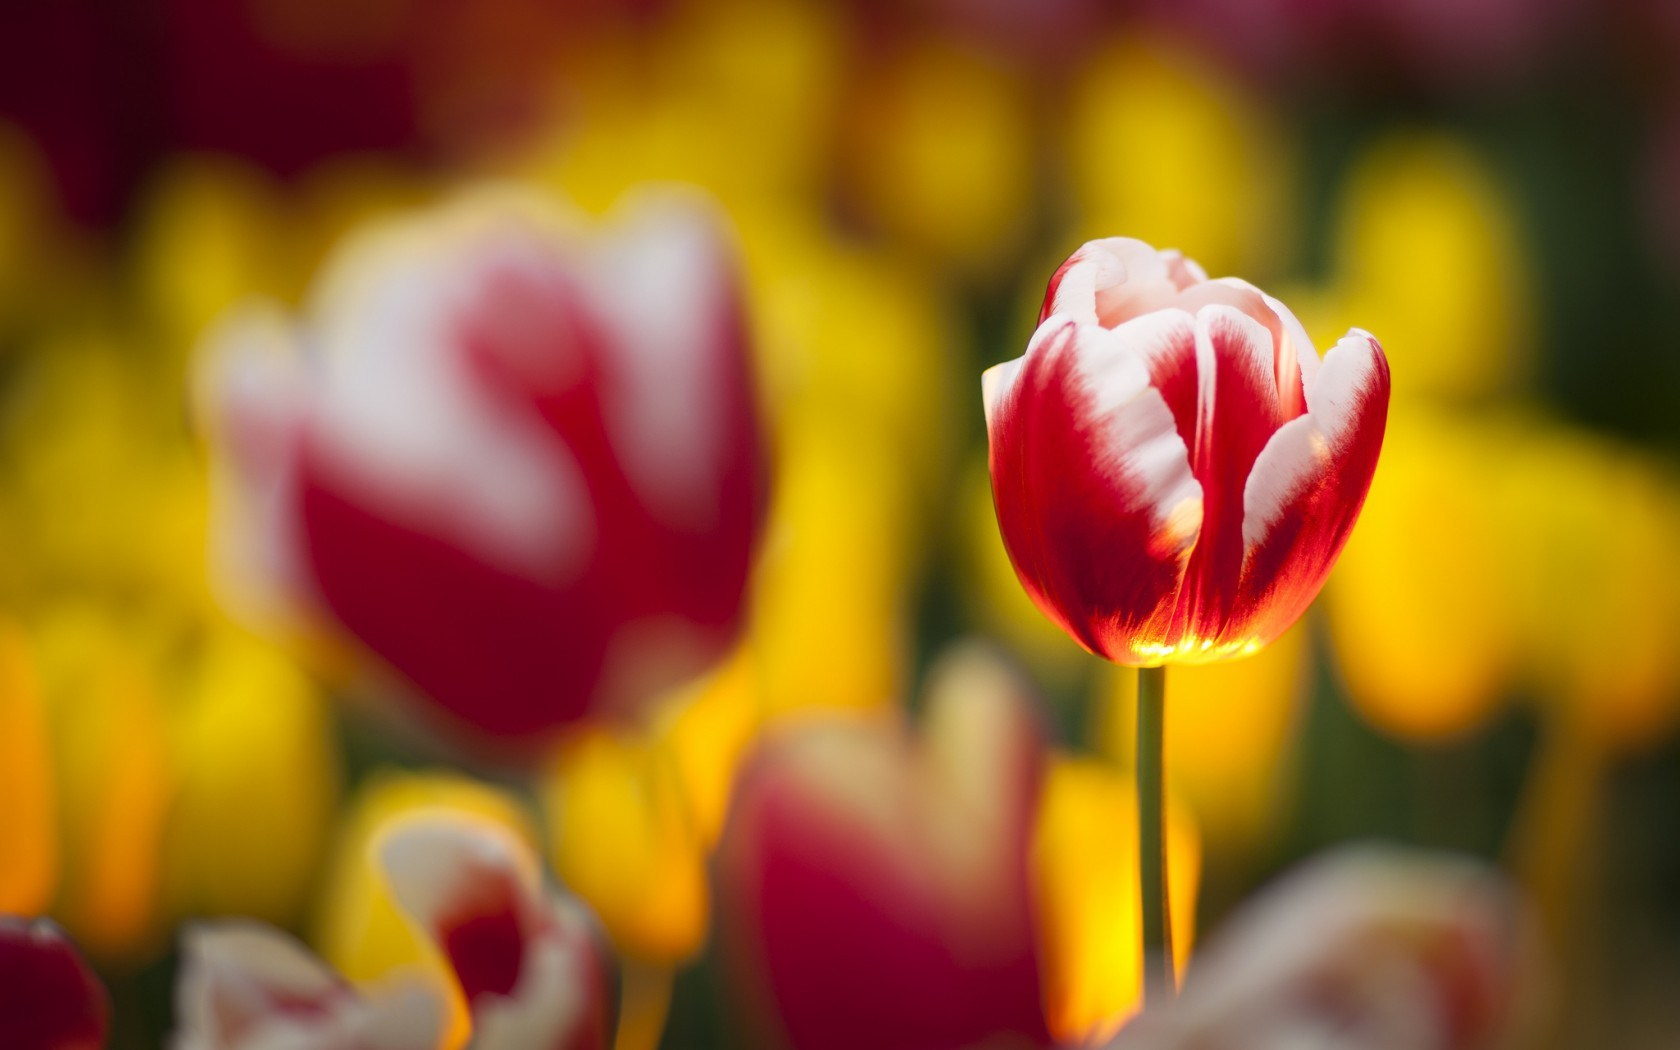 3d Effect Live Wallpapers Focus Tulips Flowers Blur Hd Desktop Wallpapers 4k Hd